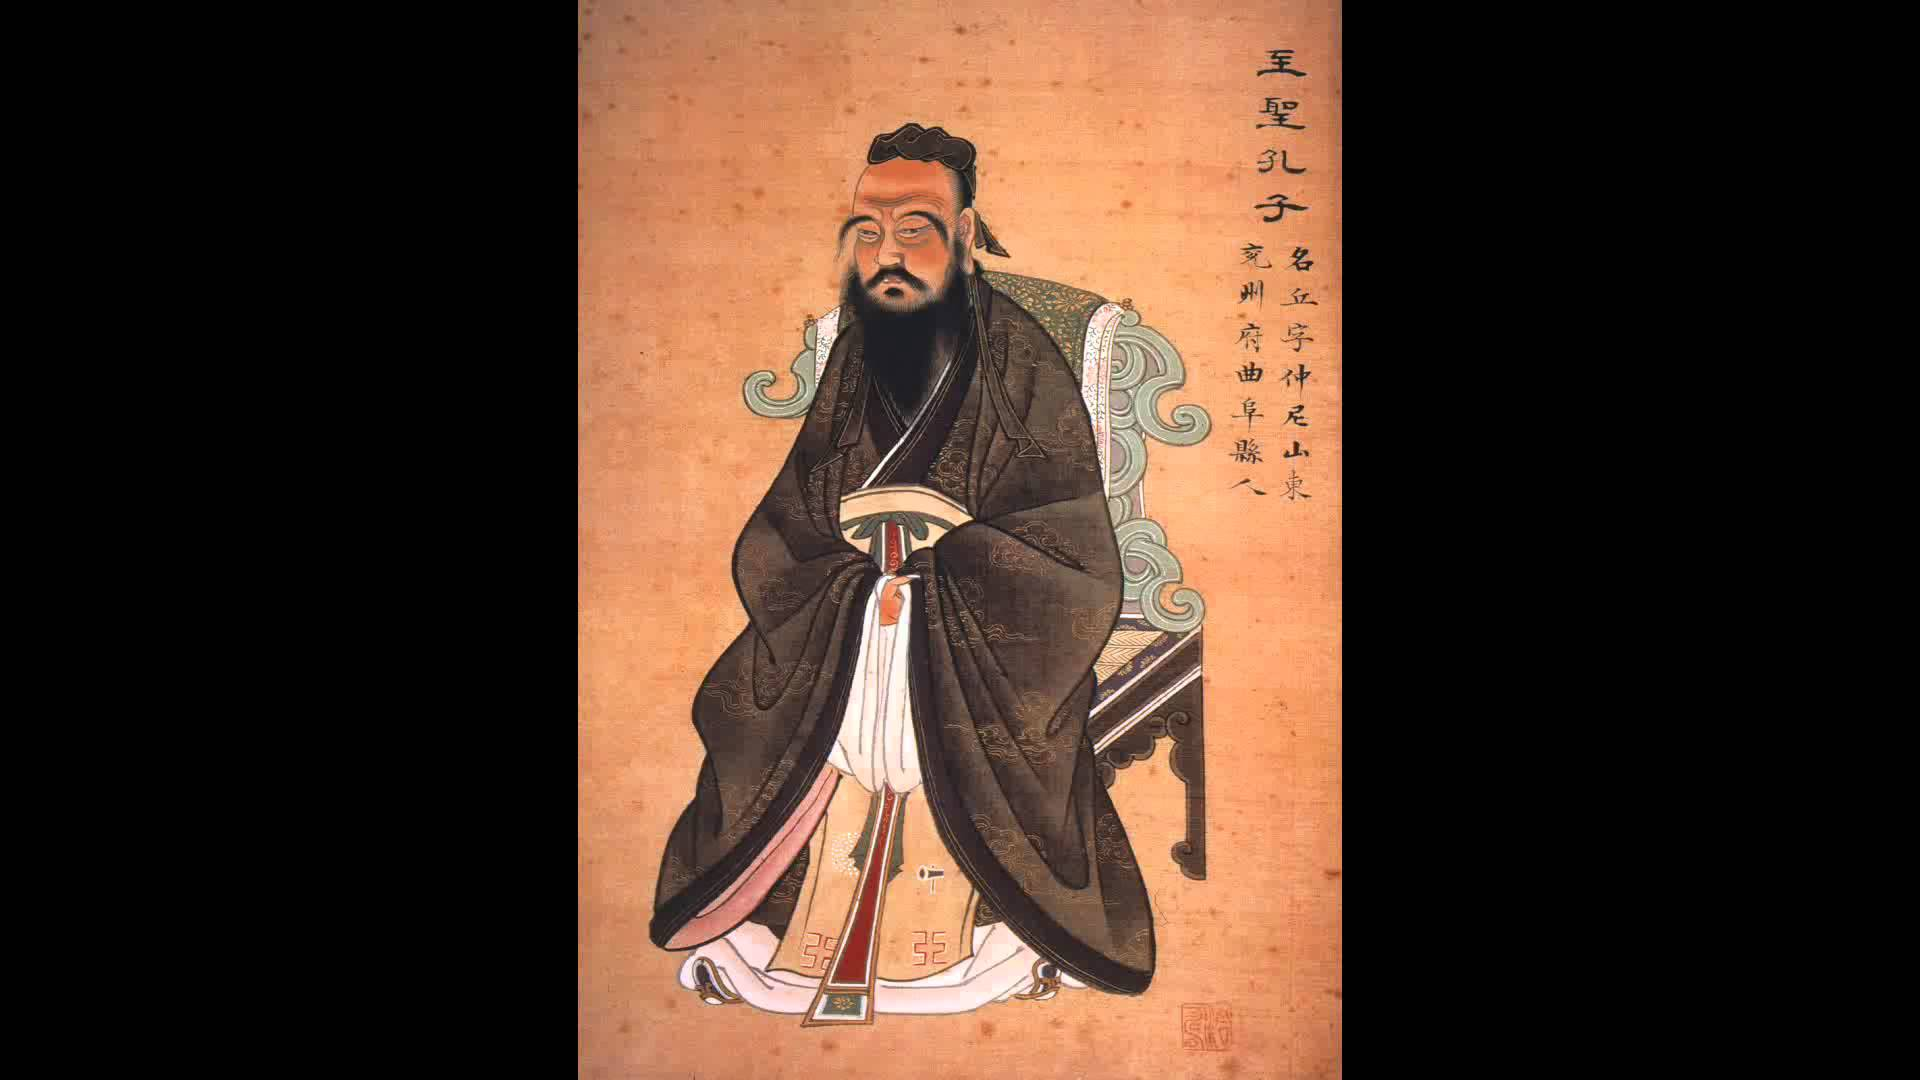 the analects 論語 lun yu, the analects of confucius a translation, divided by topic, of some of the more noteworthy passages (tr patrick moran) author family name: kong 孔.